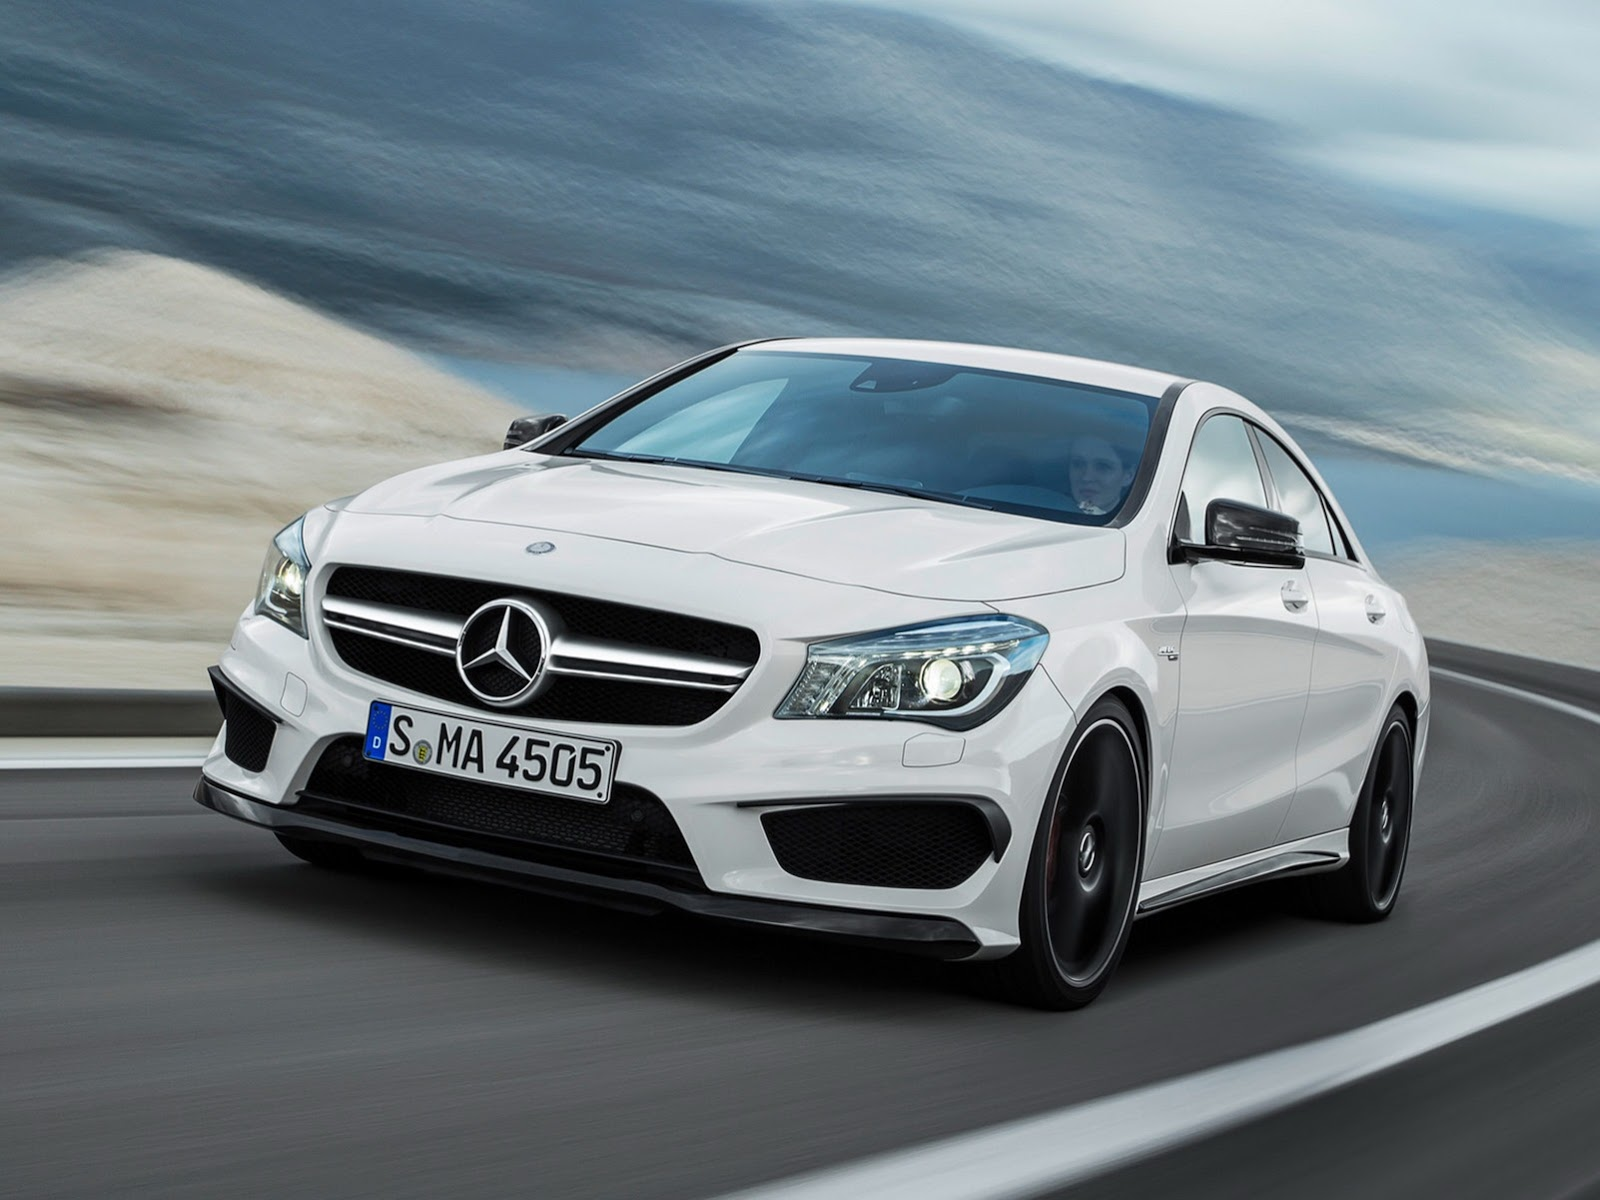 Render: 2014 Mercedes-Benz CLA 45 AMG Black Series